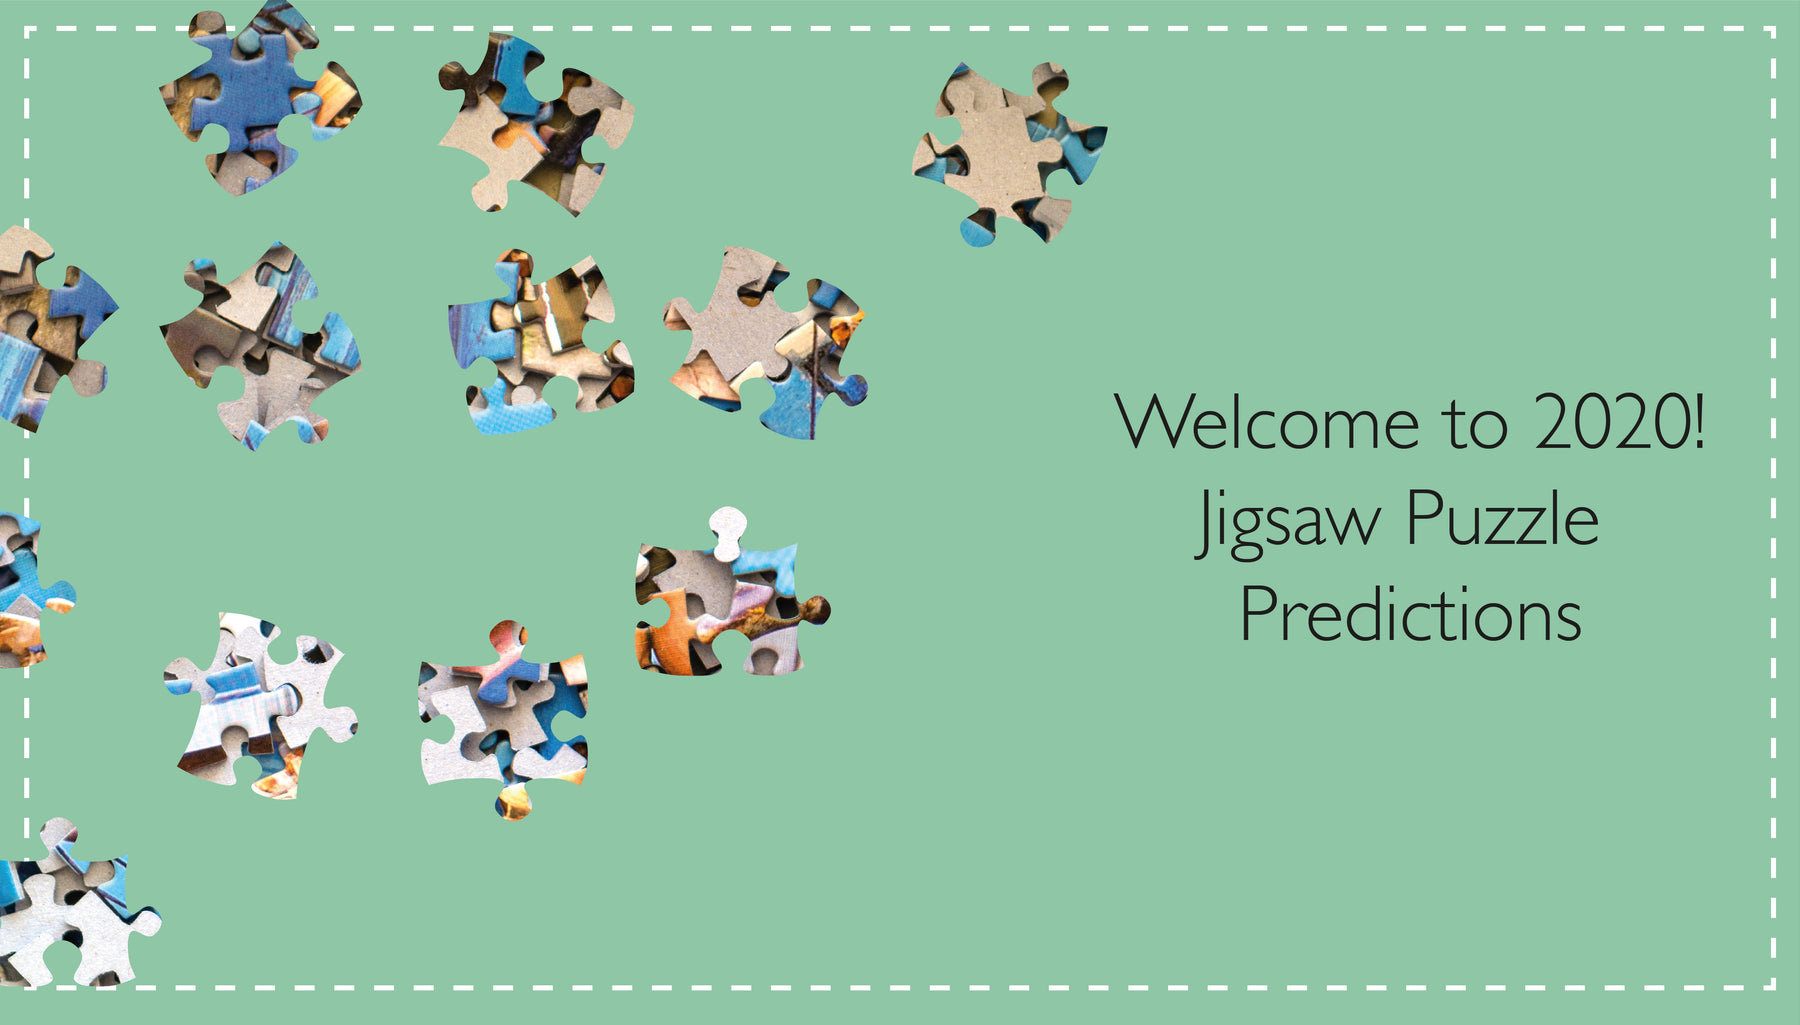 All Jigsaw Puzzle predictions for jigsaw puzzle designs in 2020!